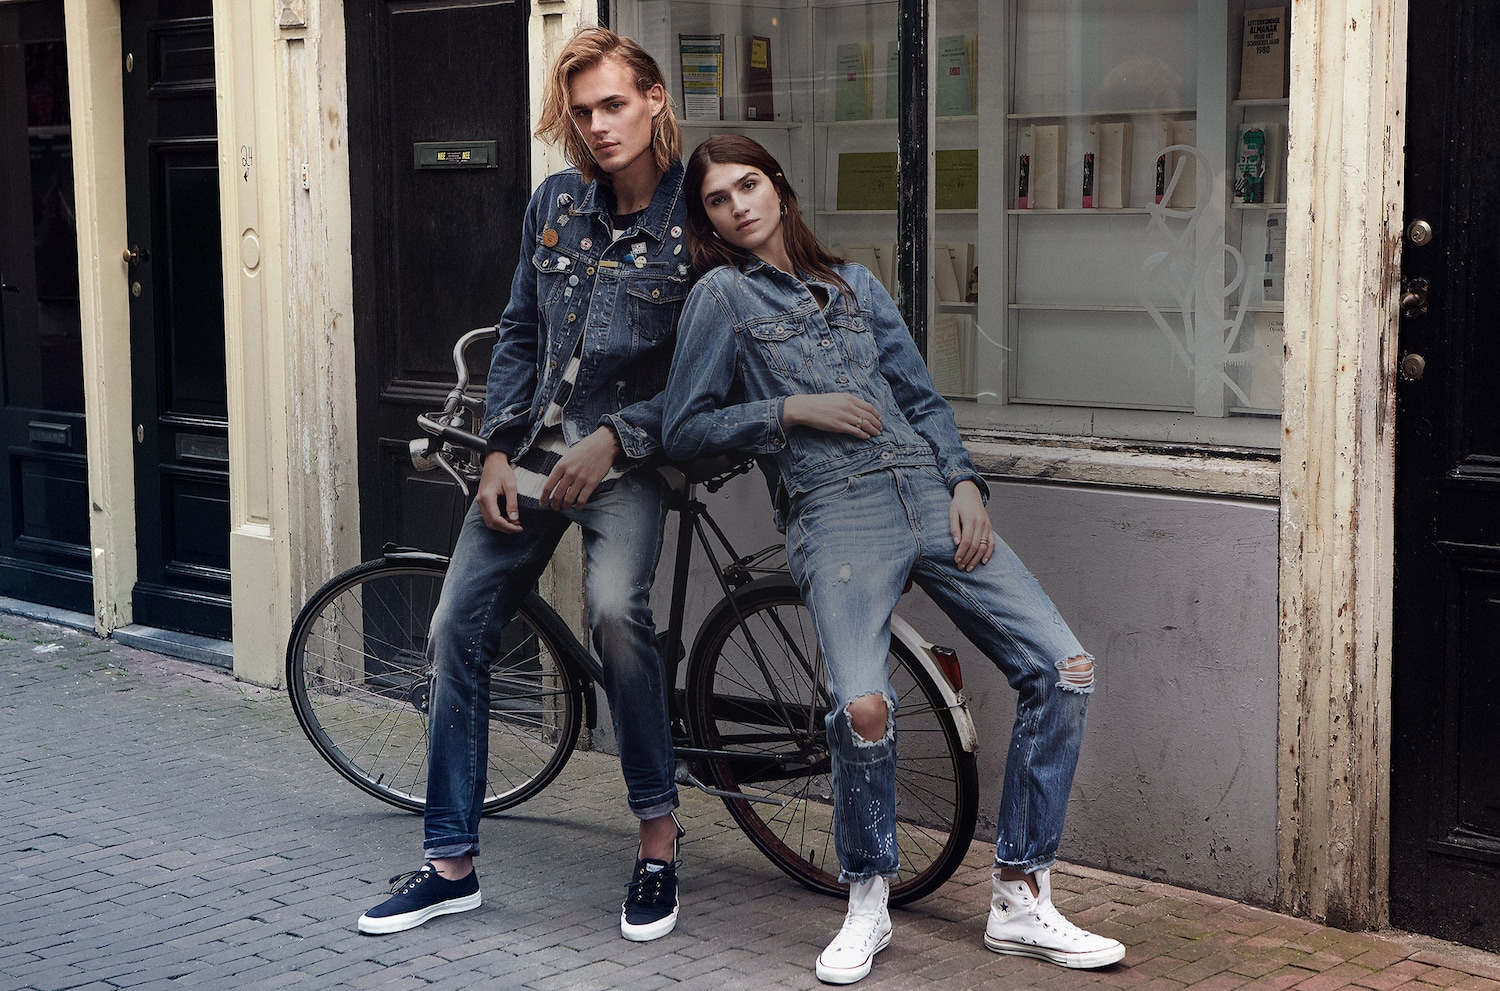 Scotch & Soda - Designed canal-side in an old church in the heart of Amsterdam. The meshing of different fabrics and textures on top of amazing fits make Scotch & Soda a staple brand for us. We wear their denim jackets on top of any outfit!